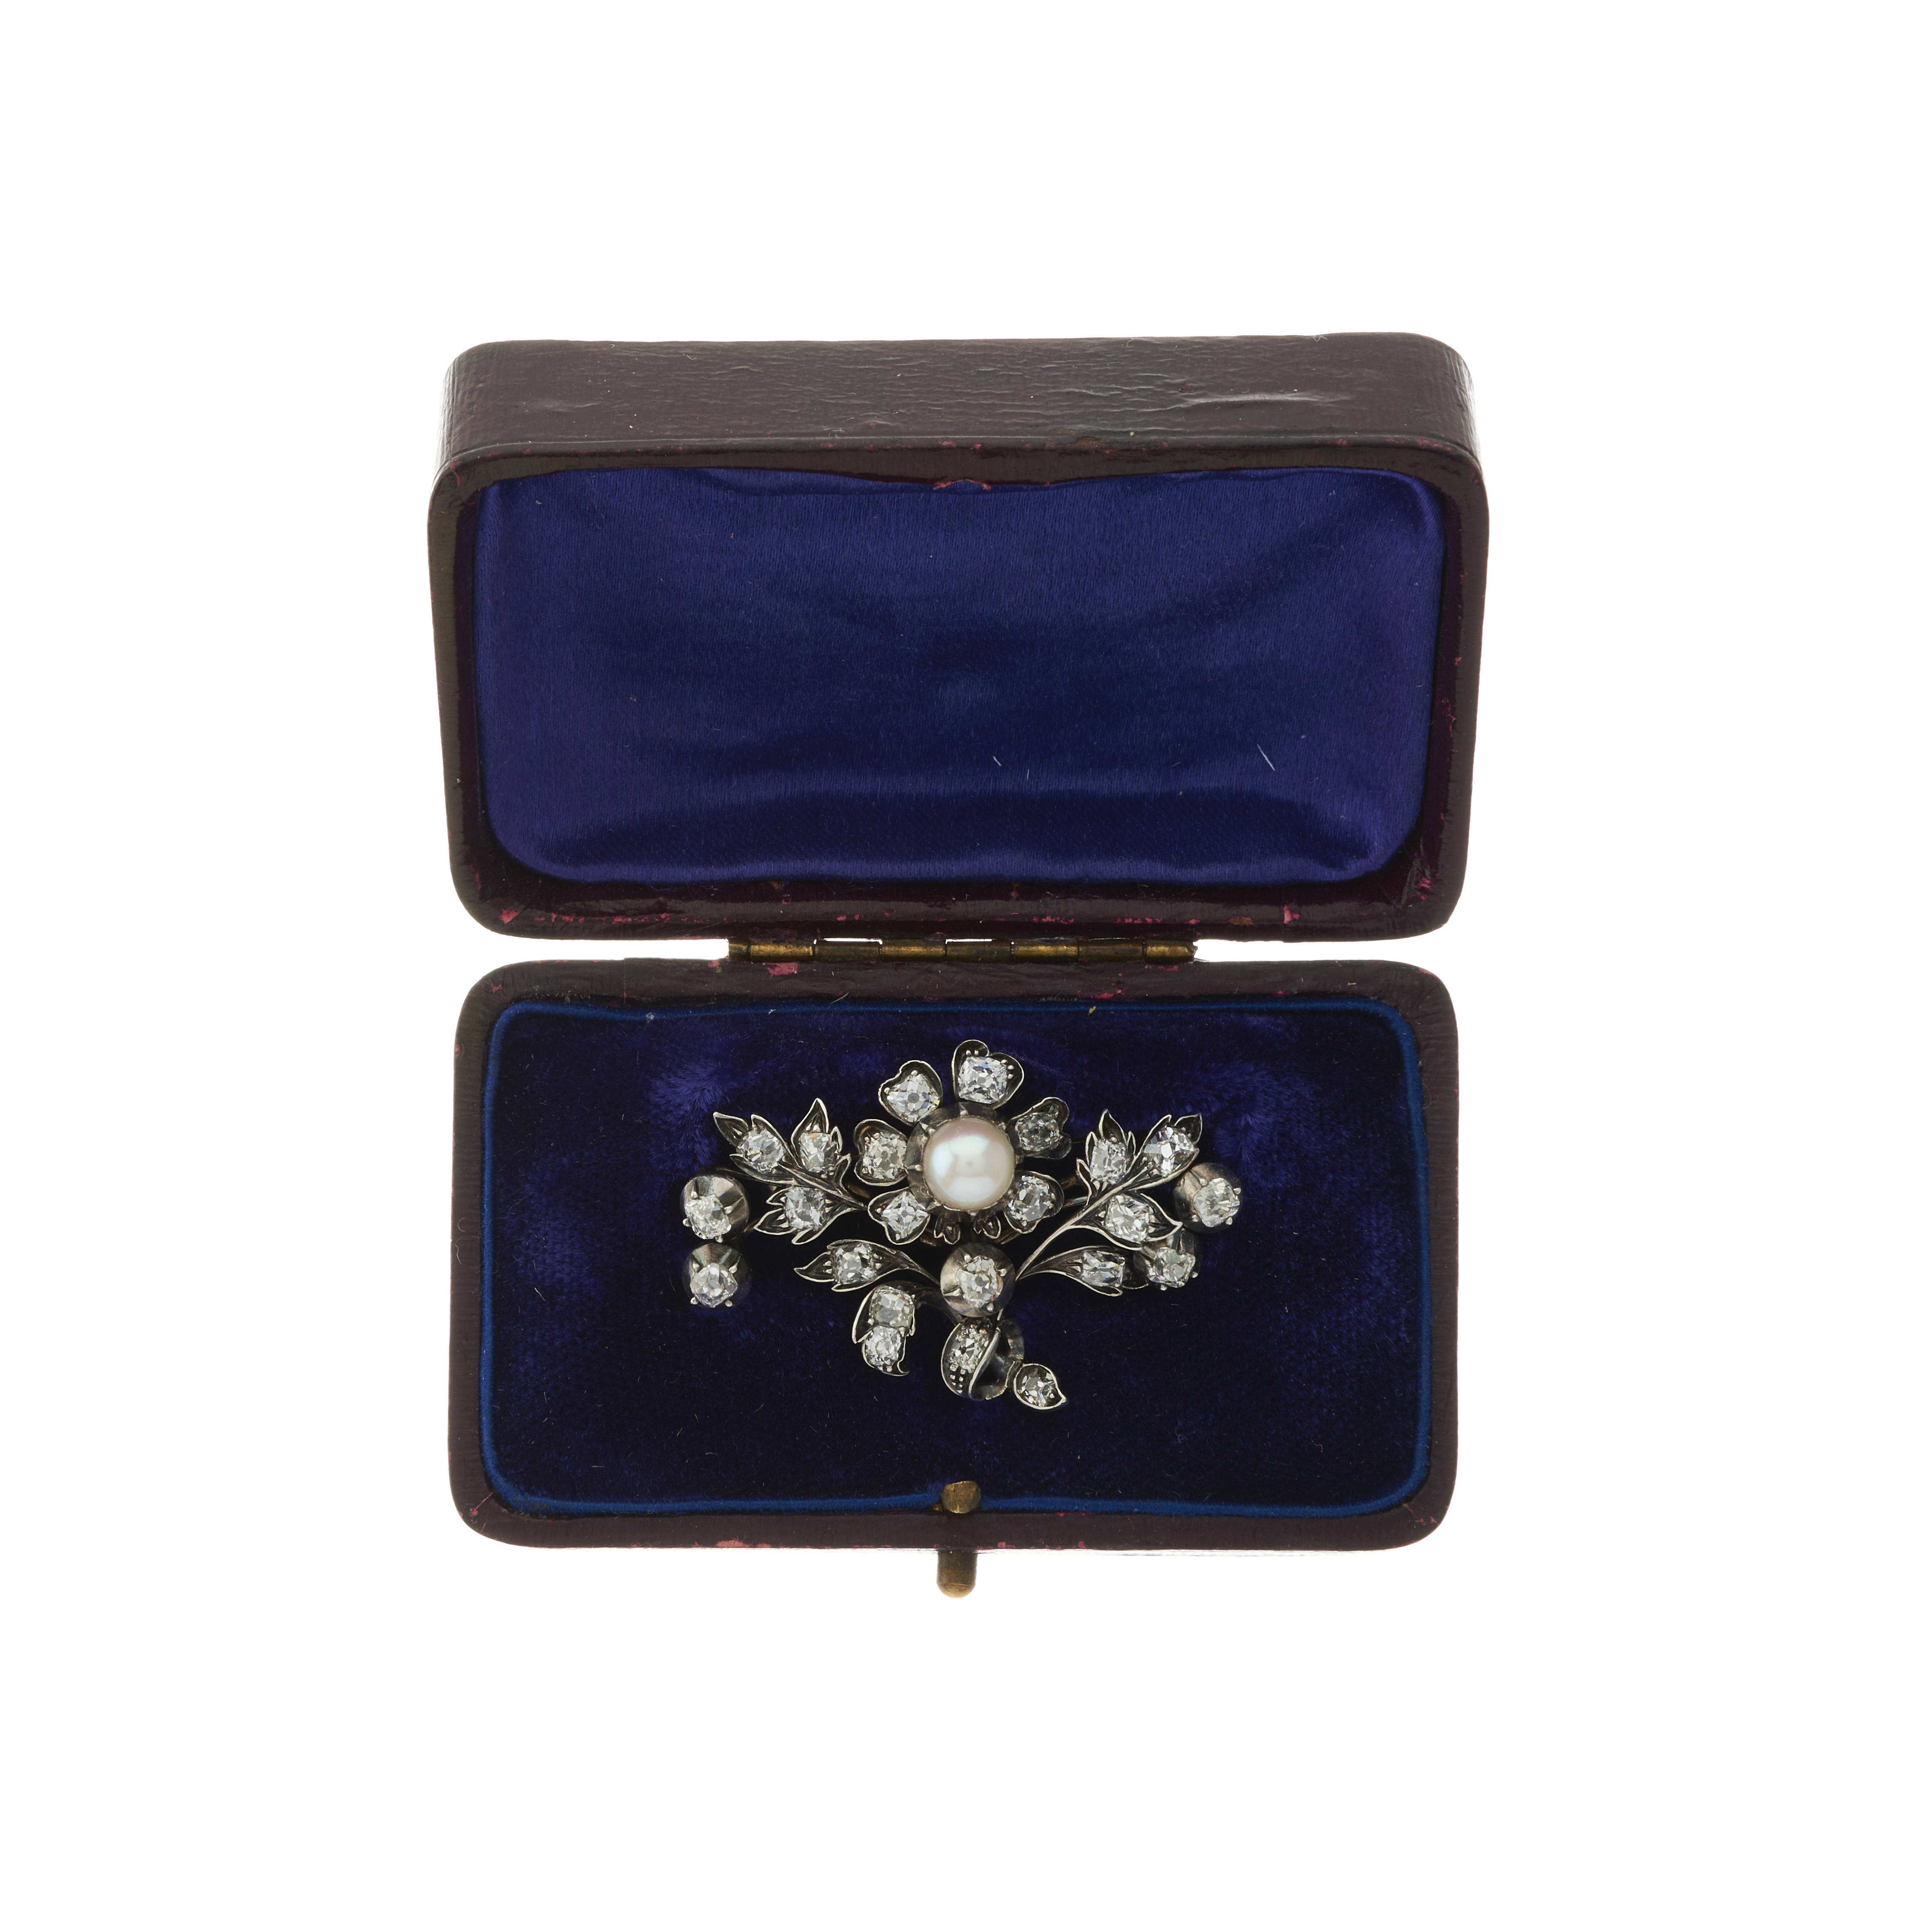 A 19th century French silver and gold, pearl and old-cut diamond floral brooch - Image 3 of 3